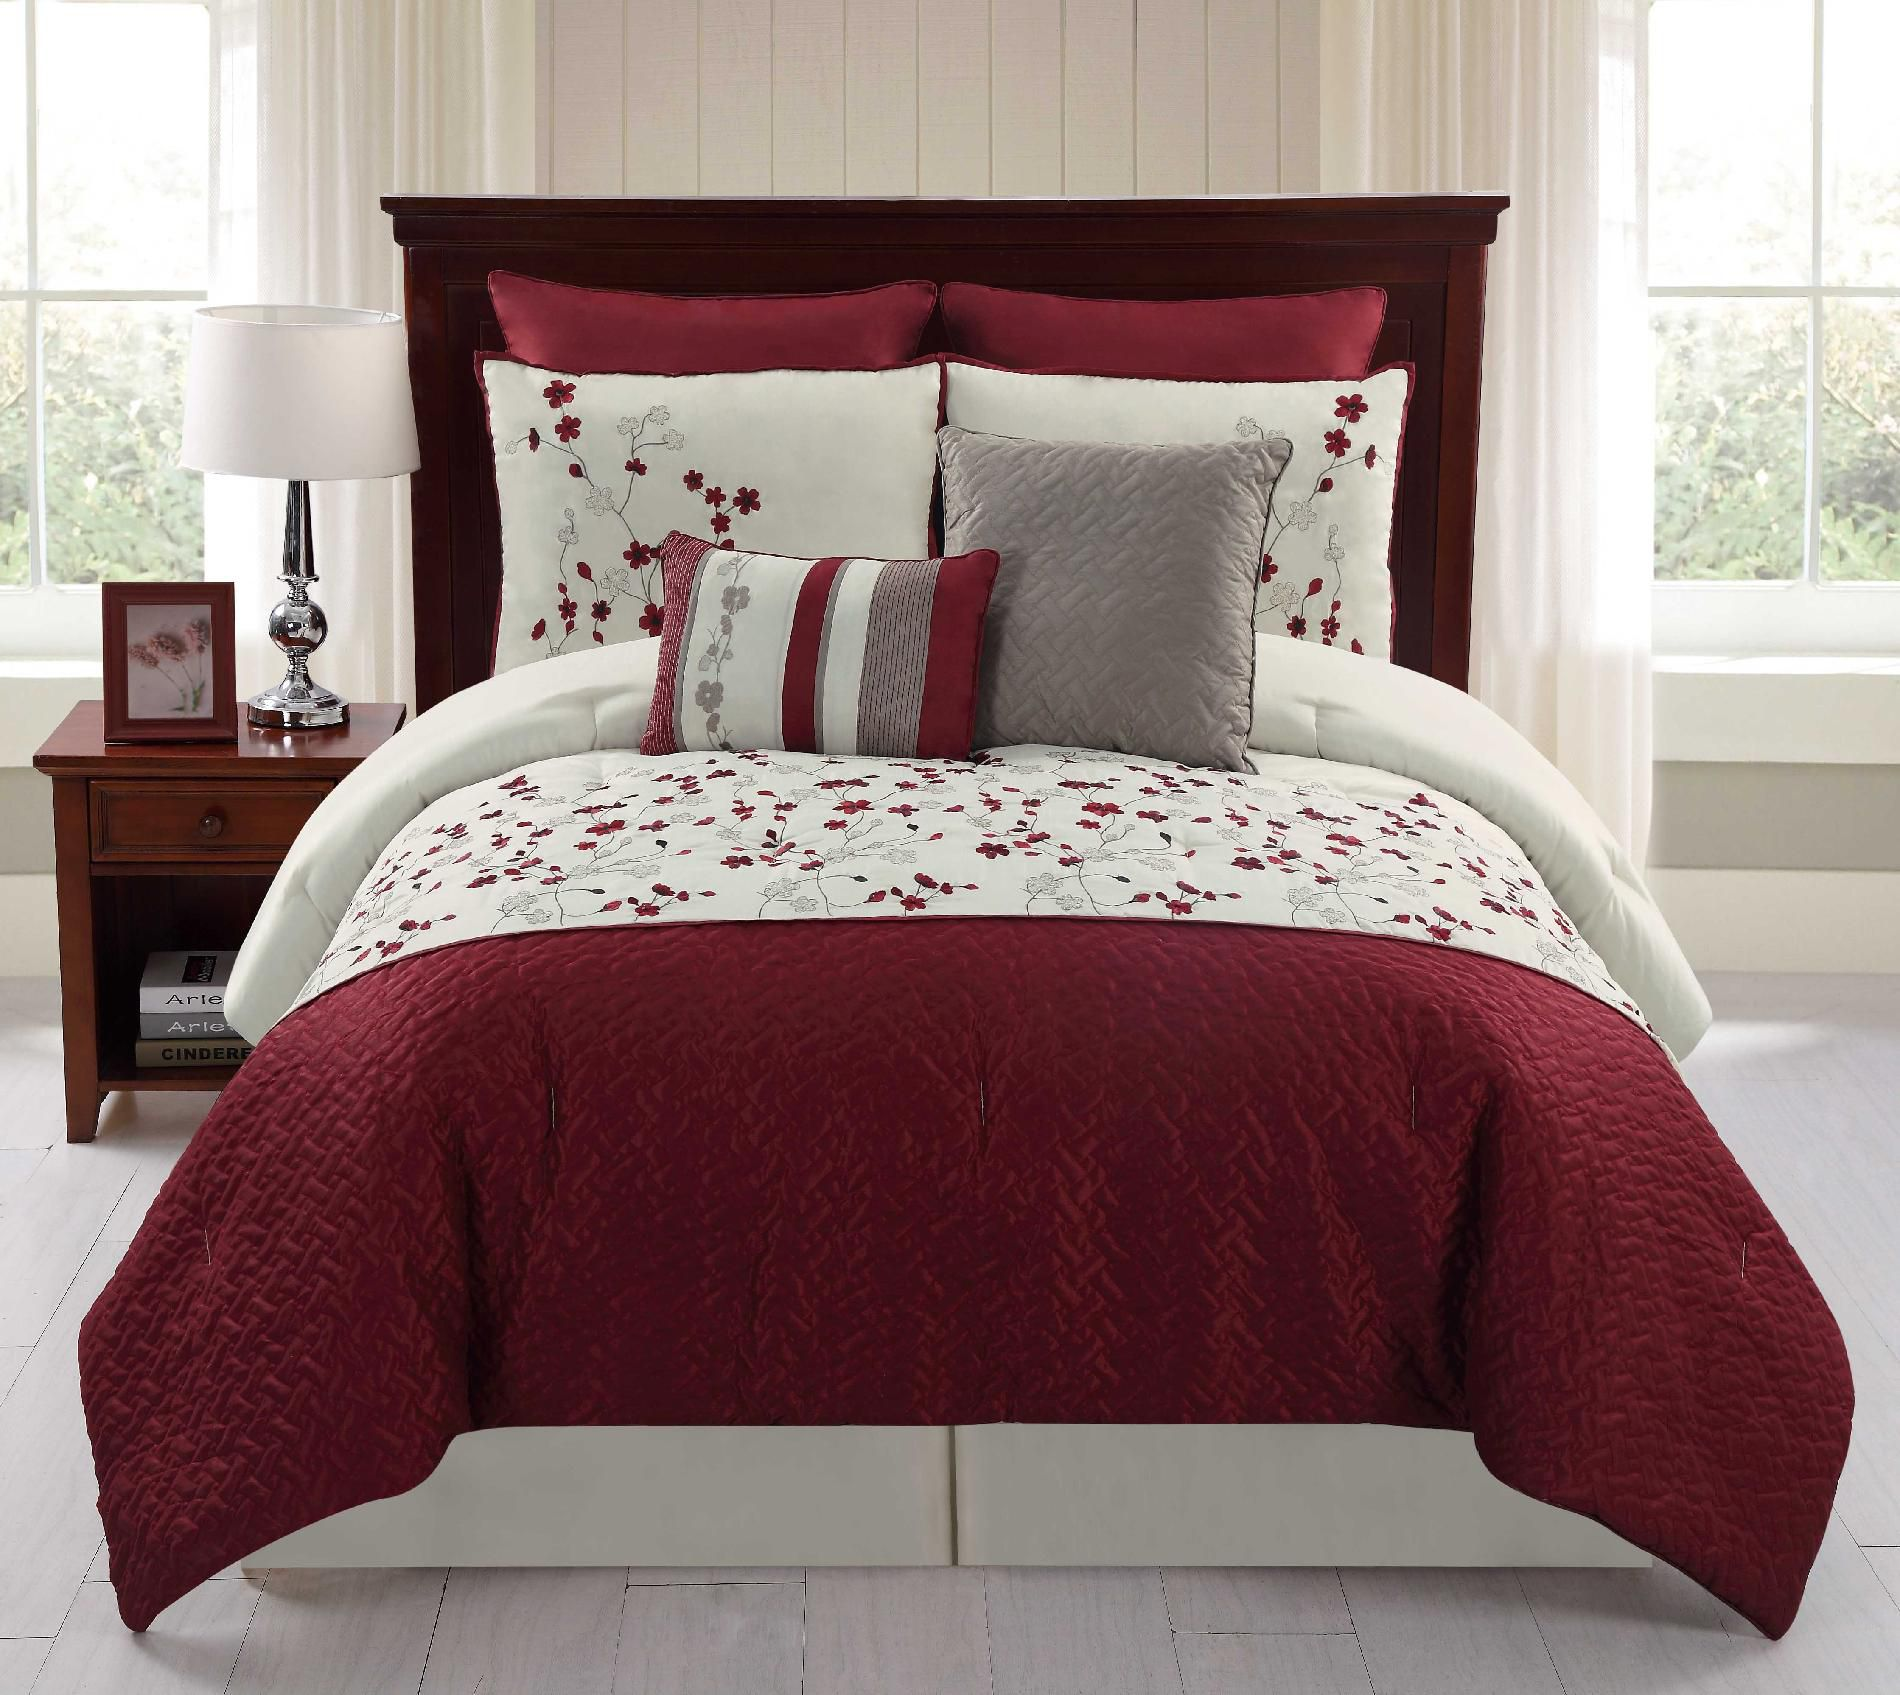 Bed Sheets and Comforter Sets